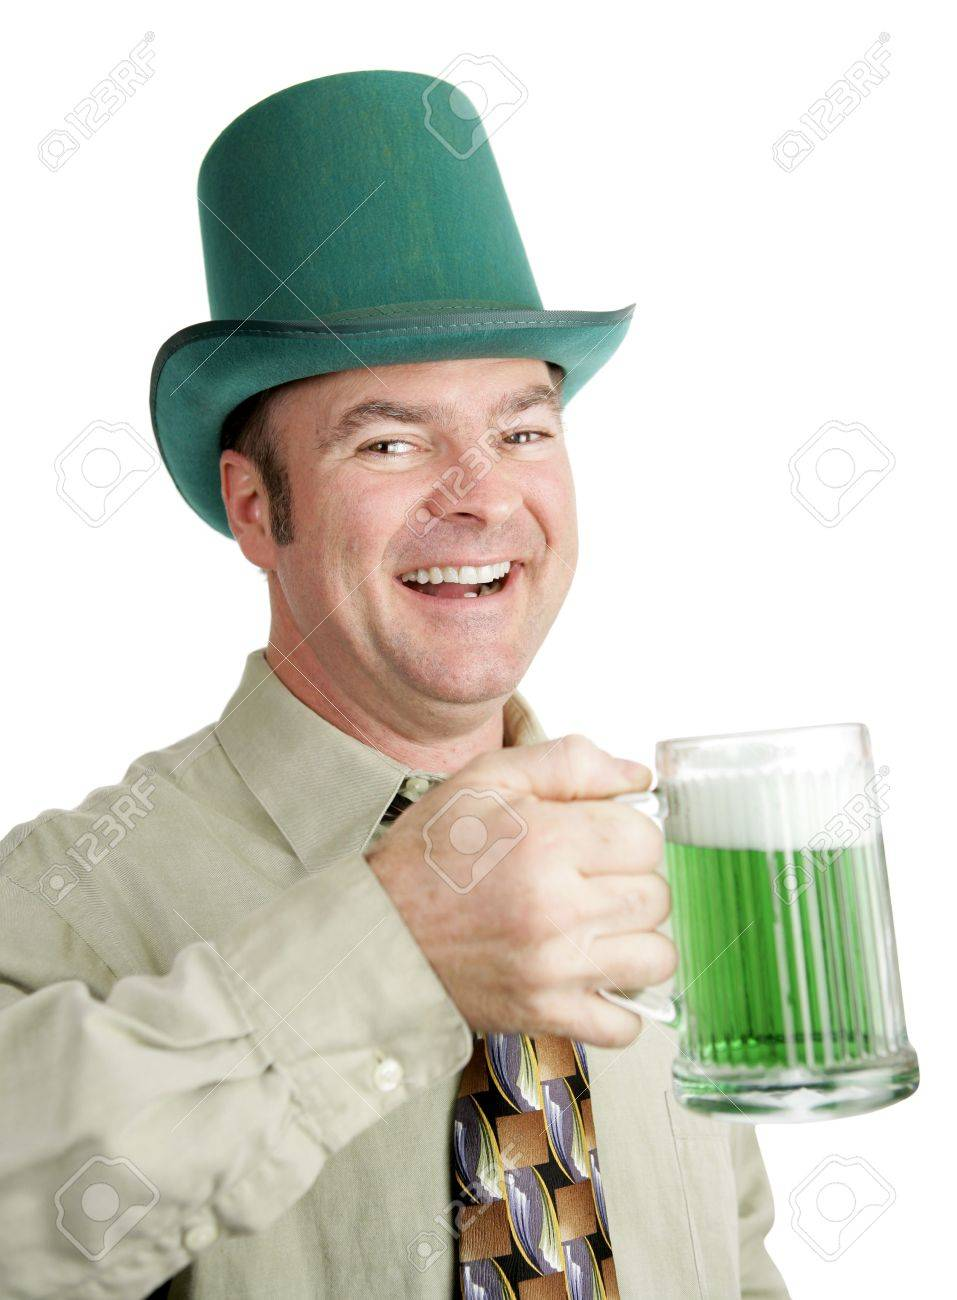 Man of Irish heritage enjoying a green beer on St. Patrick's Day and singing a drinking song.  Isolated on white. Stock Photo - 2348726